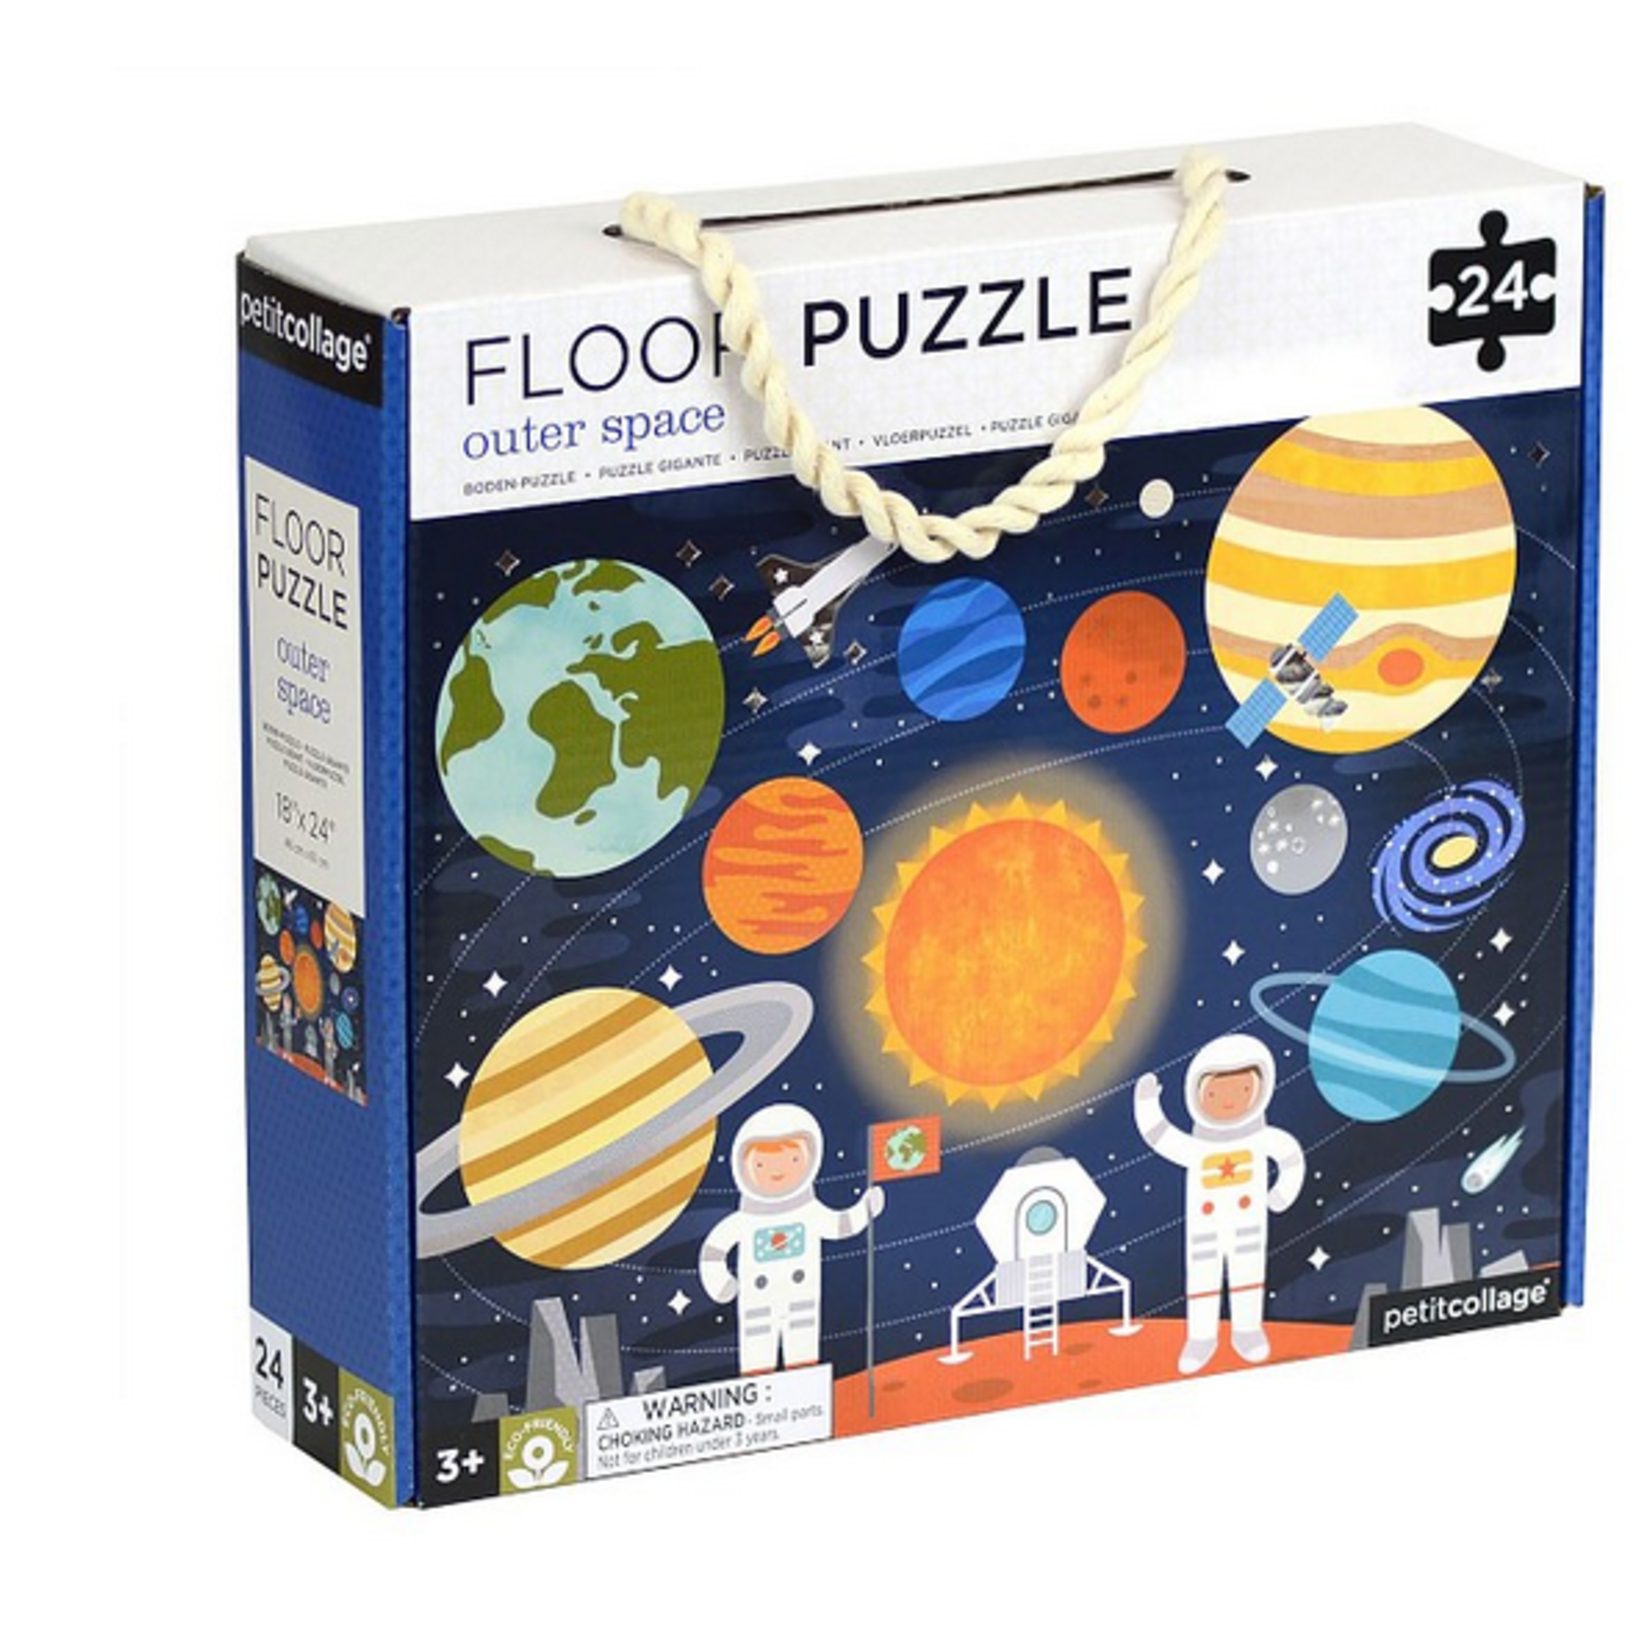 Outer Space 24 Piece Floor Puzzle